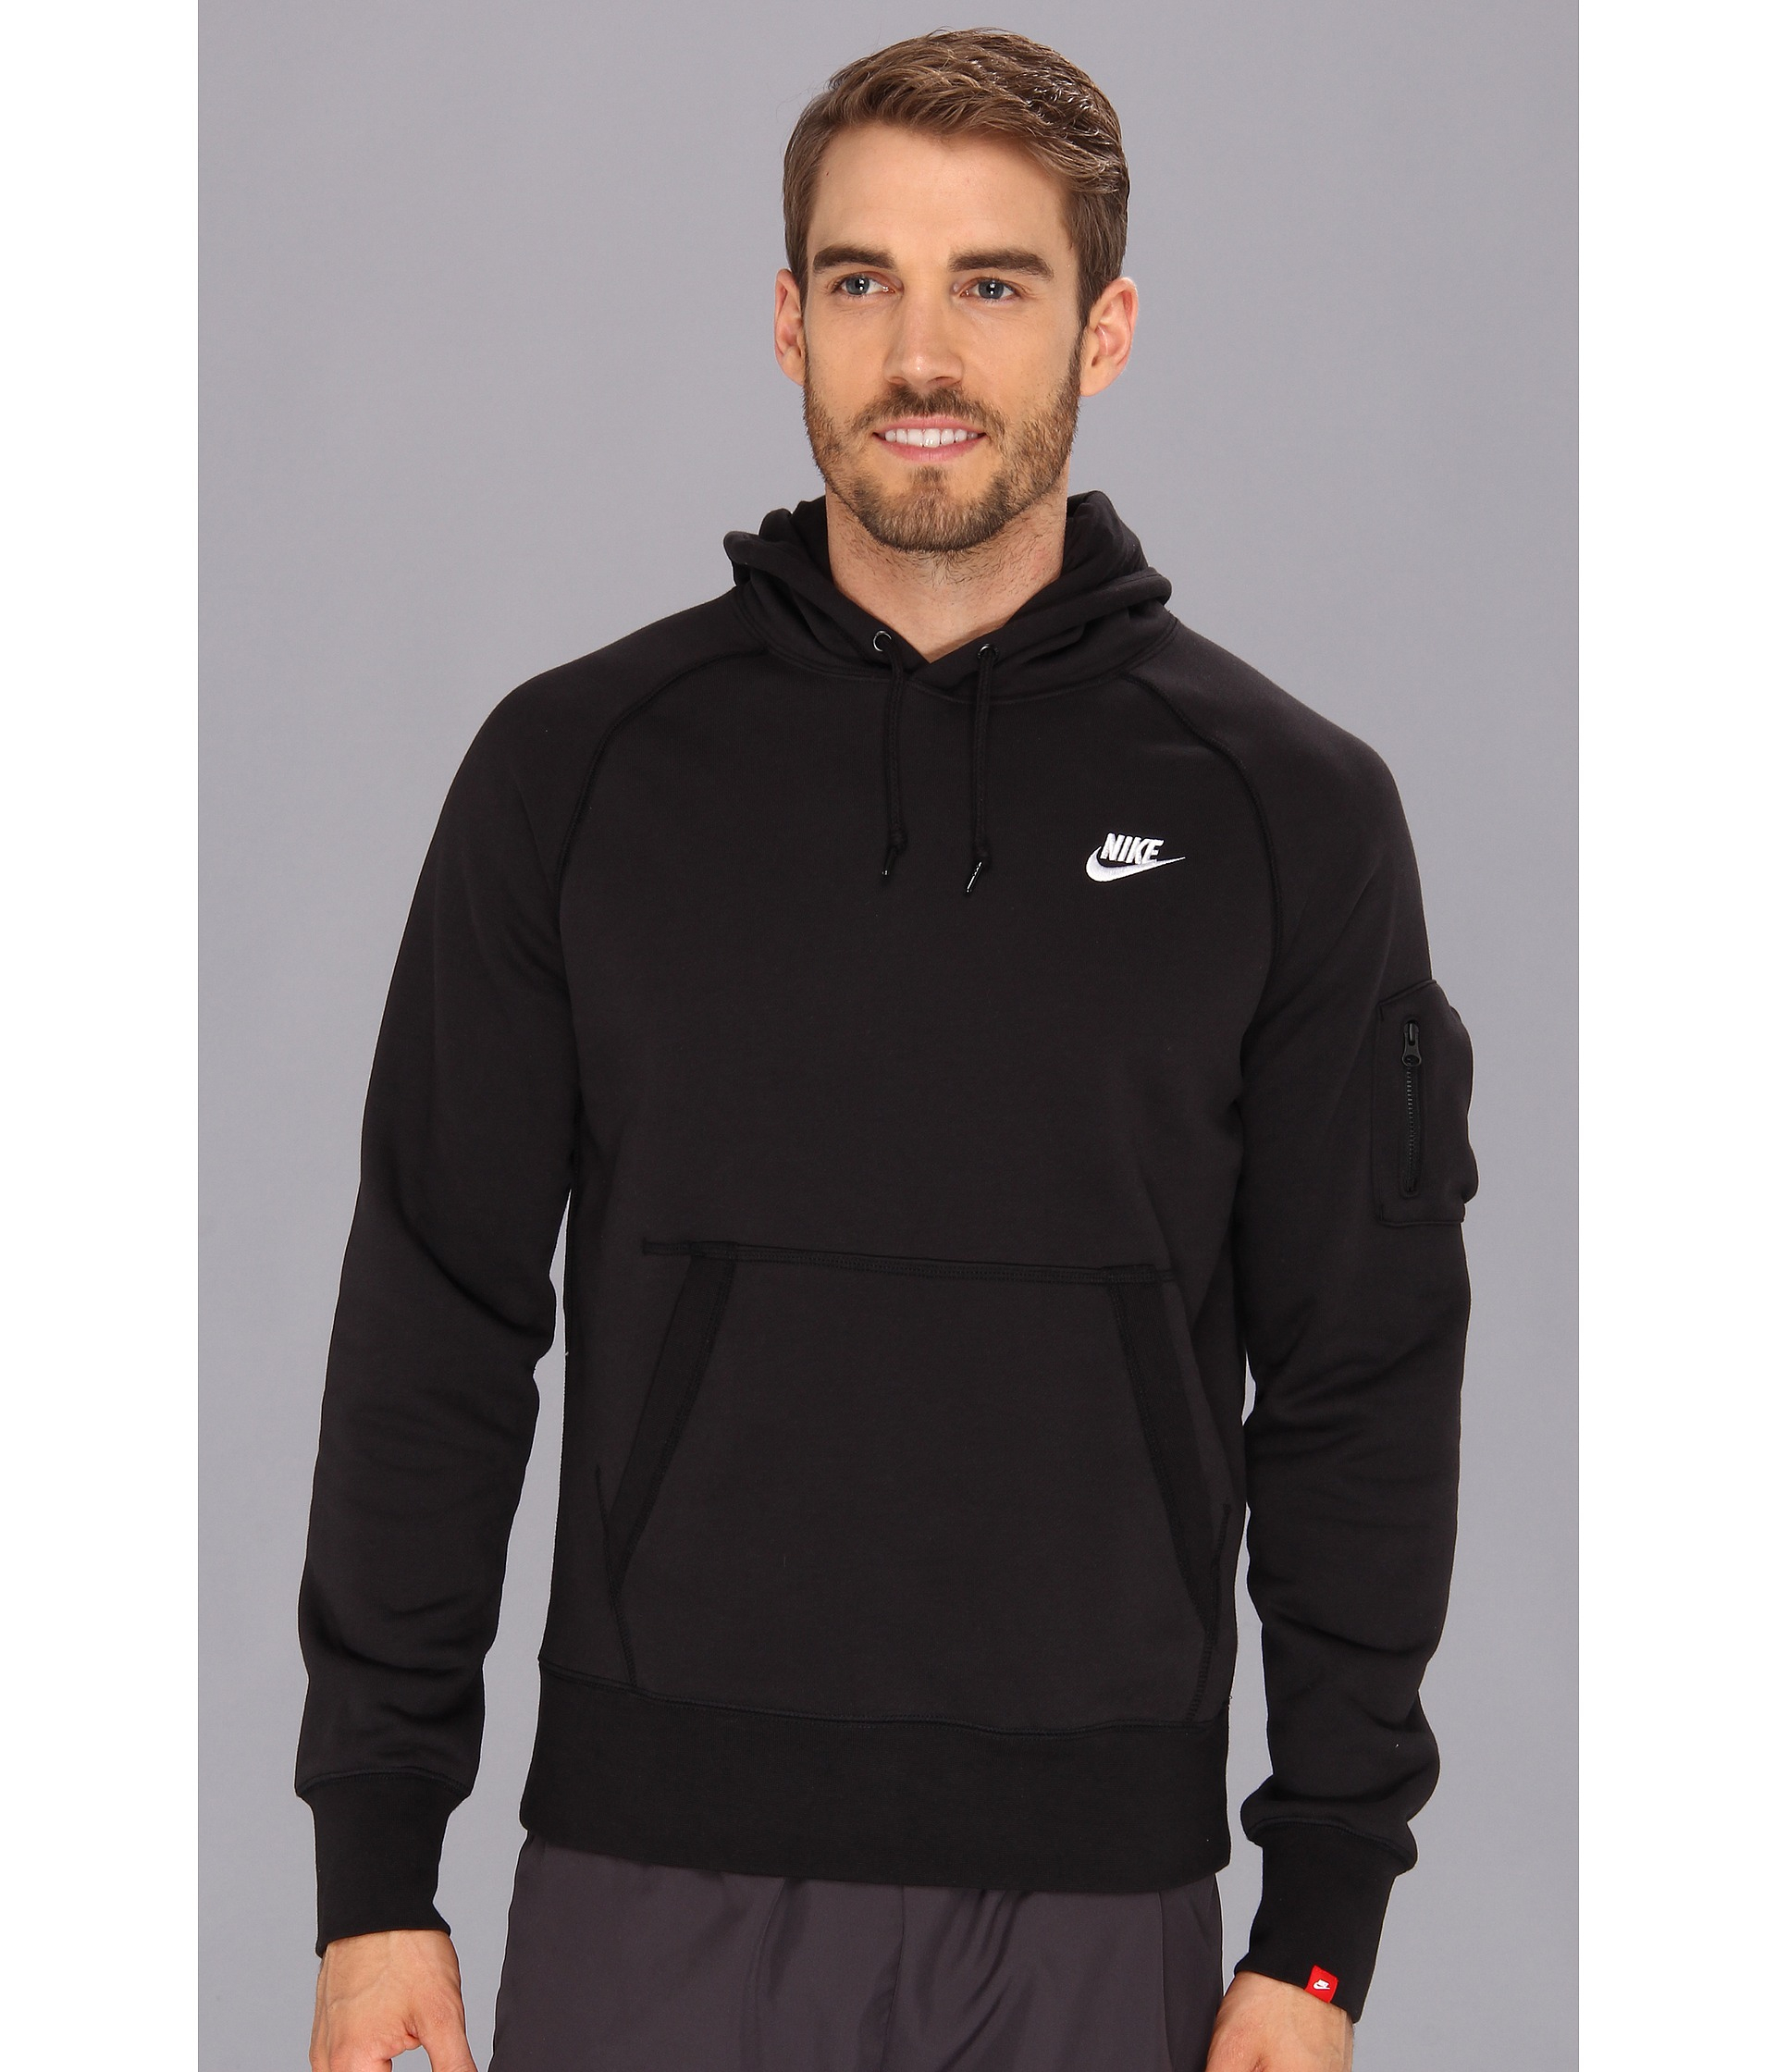 638f8533 Nike Aw77 Fleece Pullover Hoodie in Black for Men - Lyst